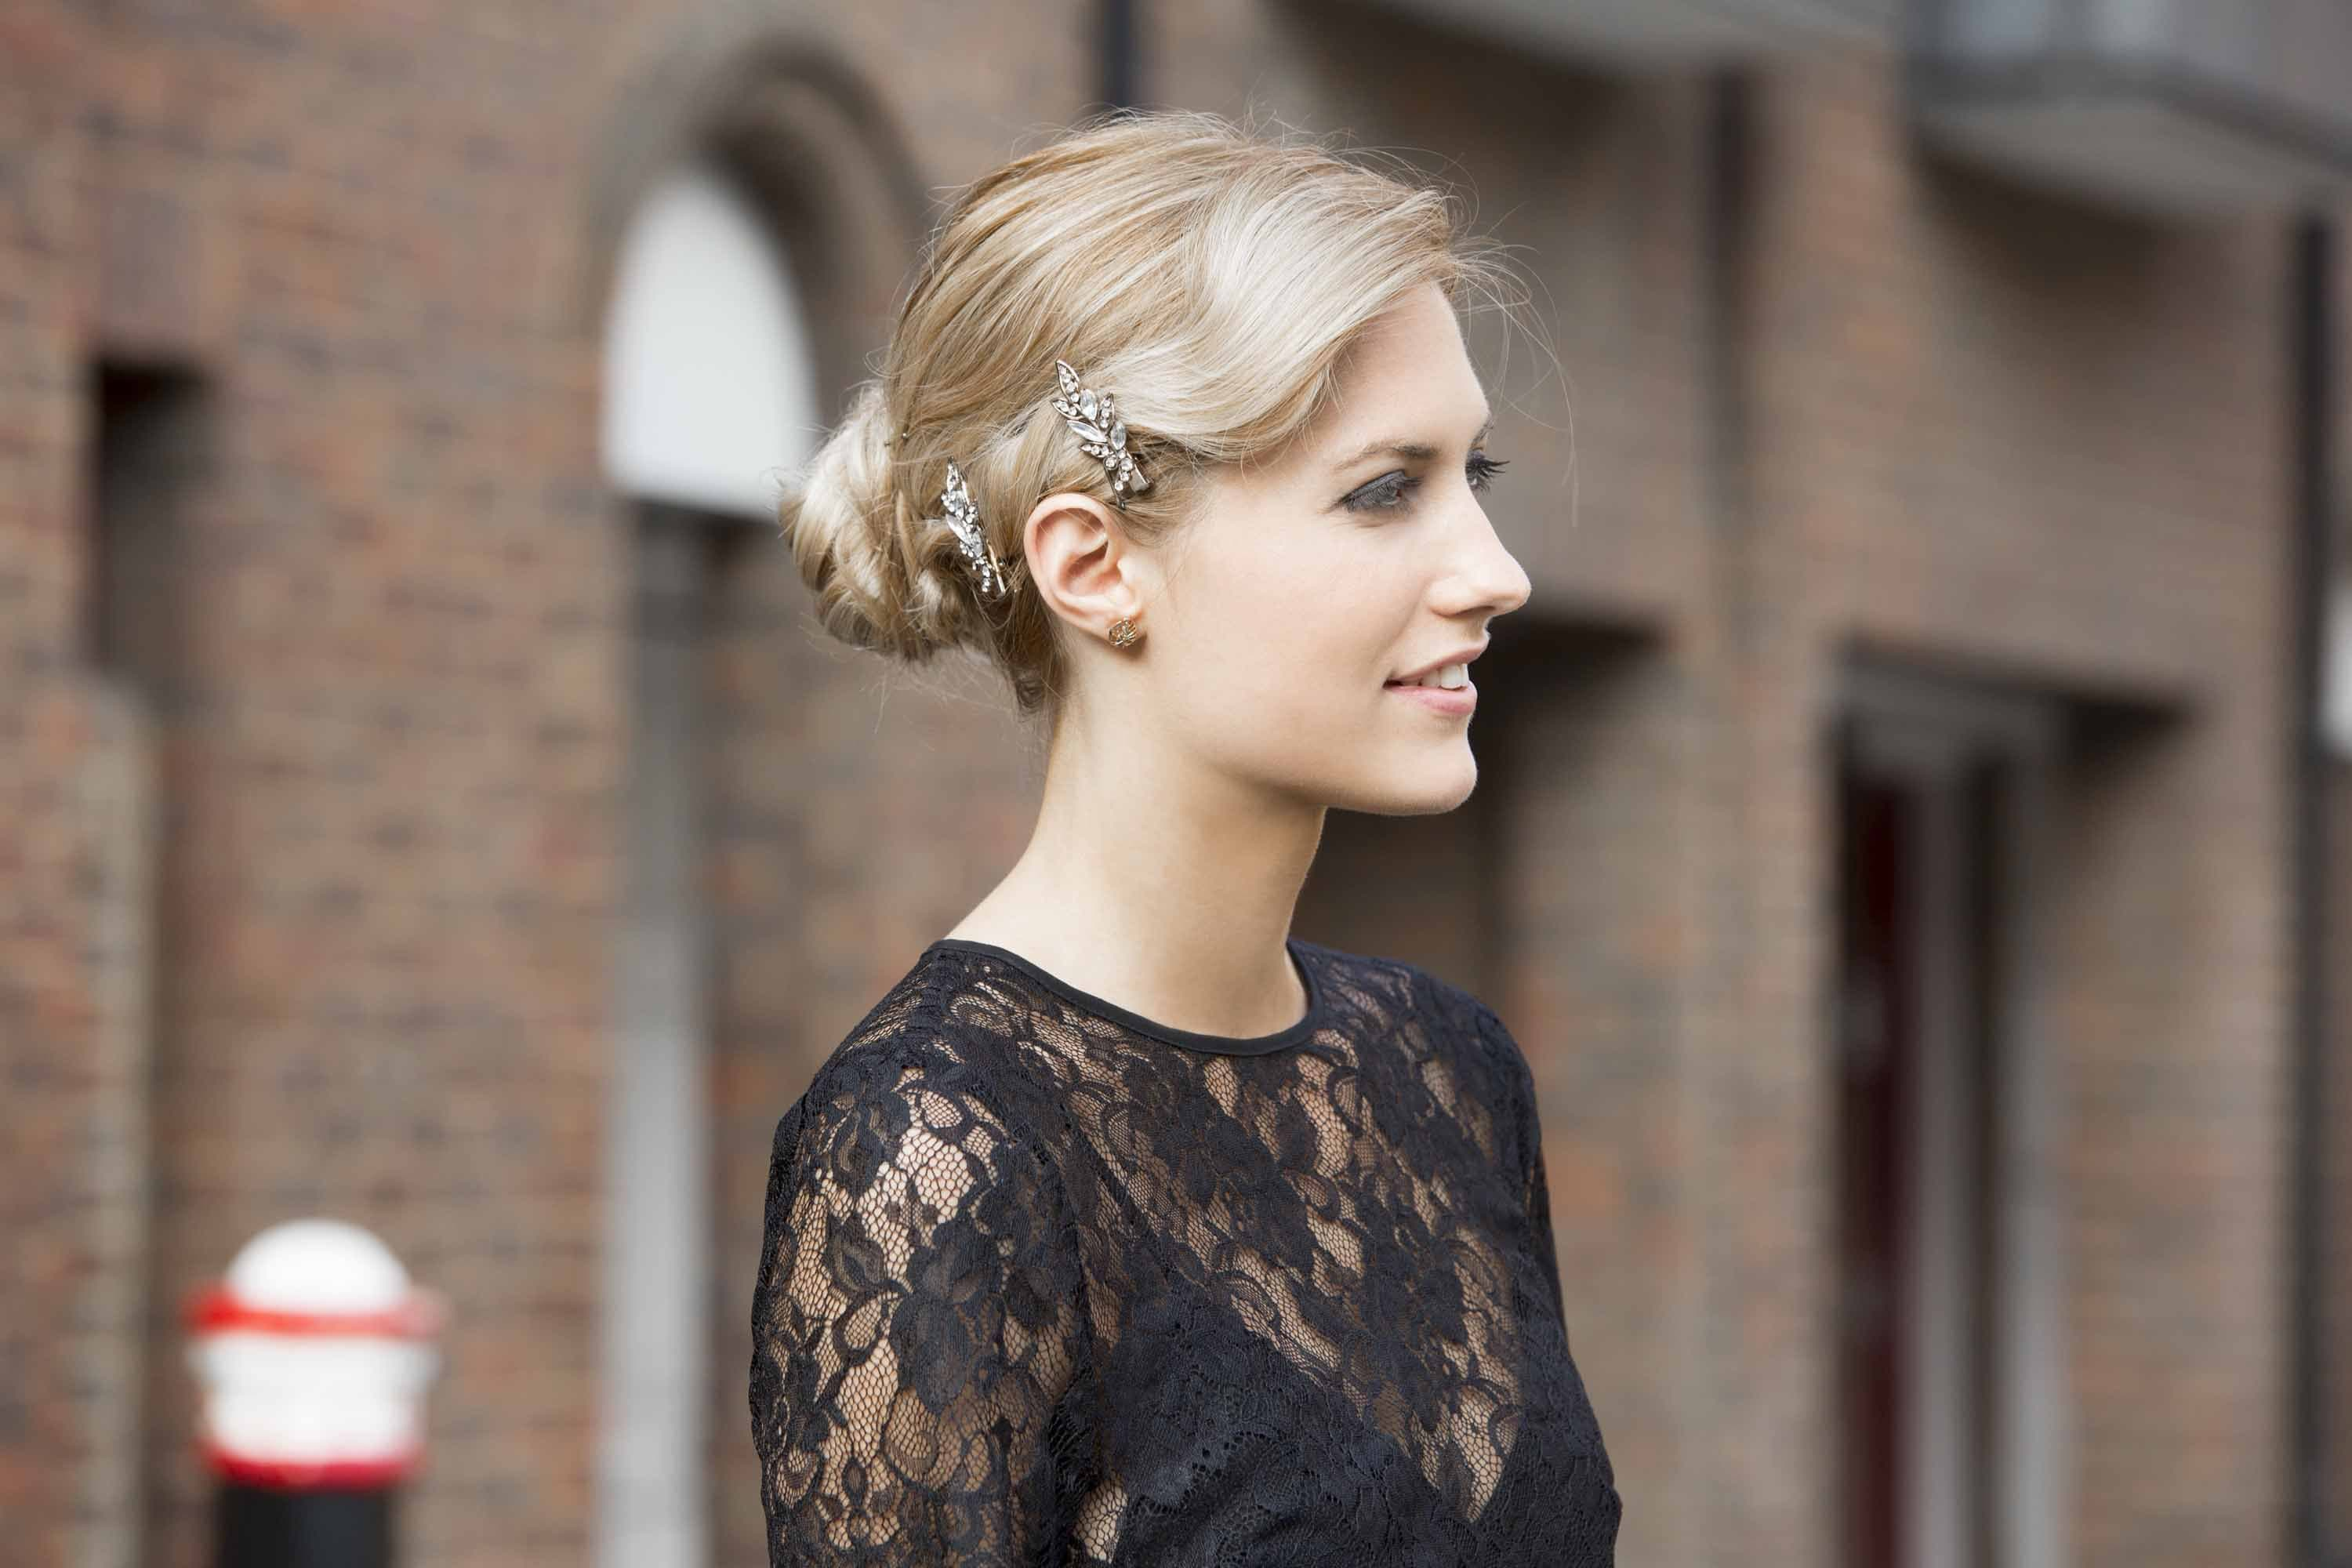 All Hair Styles: Vintage Updo Hairstyle: How To Create This Chic Hairstyle